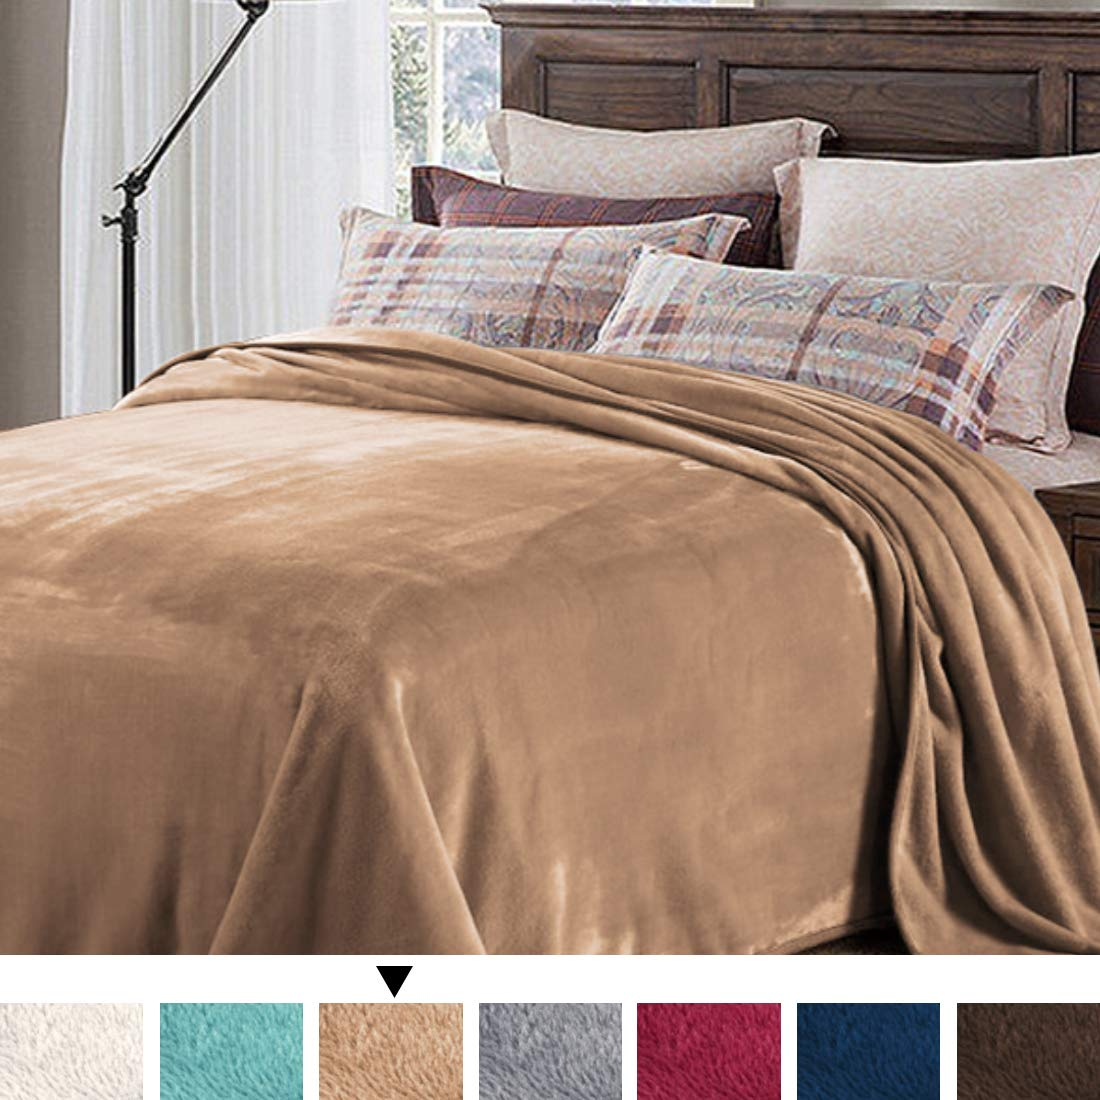 H.VERSAILTEX Flannel Queen Size Fleece Blanket (90'' x 90'', Camel) - Extra Soft Brush Fabric Super Warm Bed Blanket Couch Blankets and Throws Oversized for Household/Camping/Office